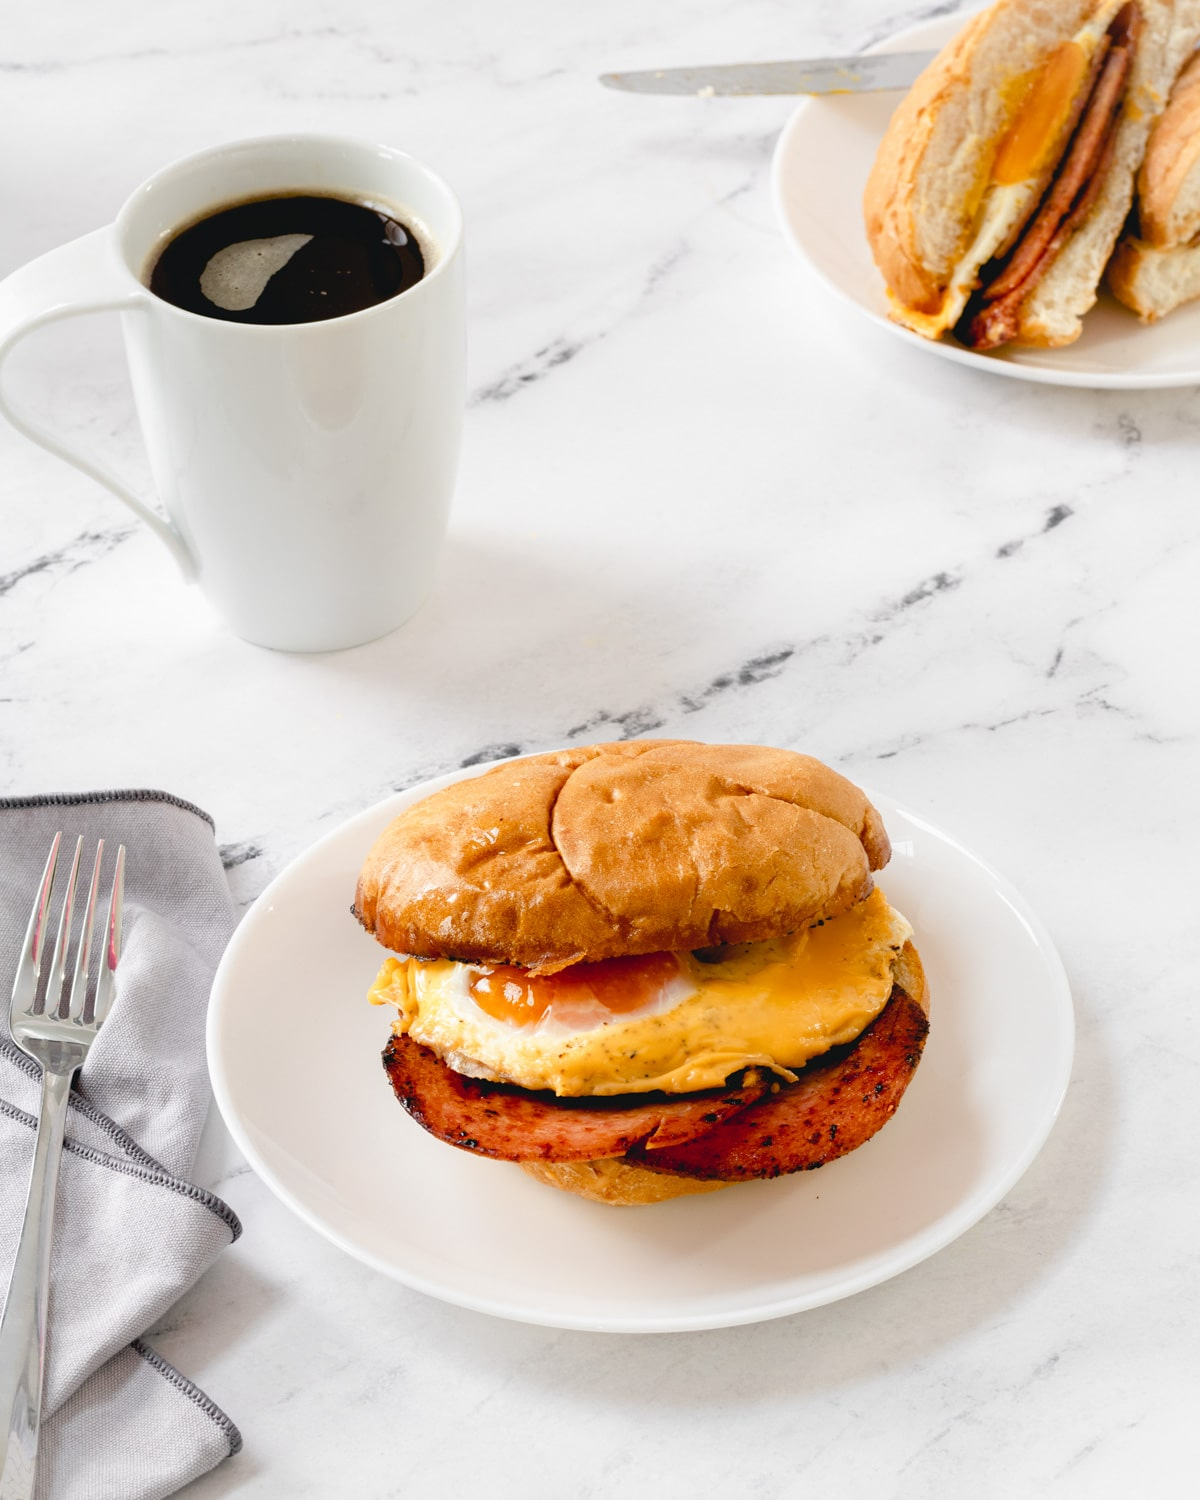 Pork roll egg and cheese sandwich on a white plate with a cup of coffee.